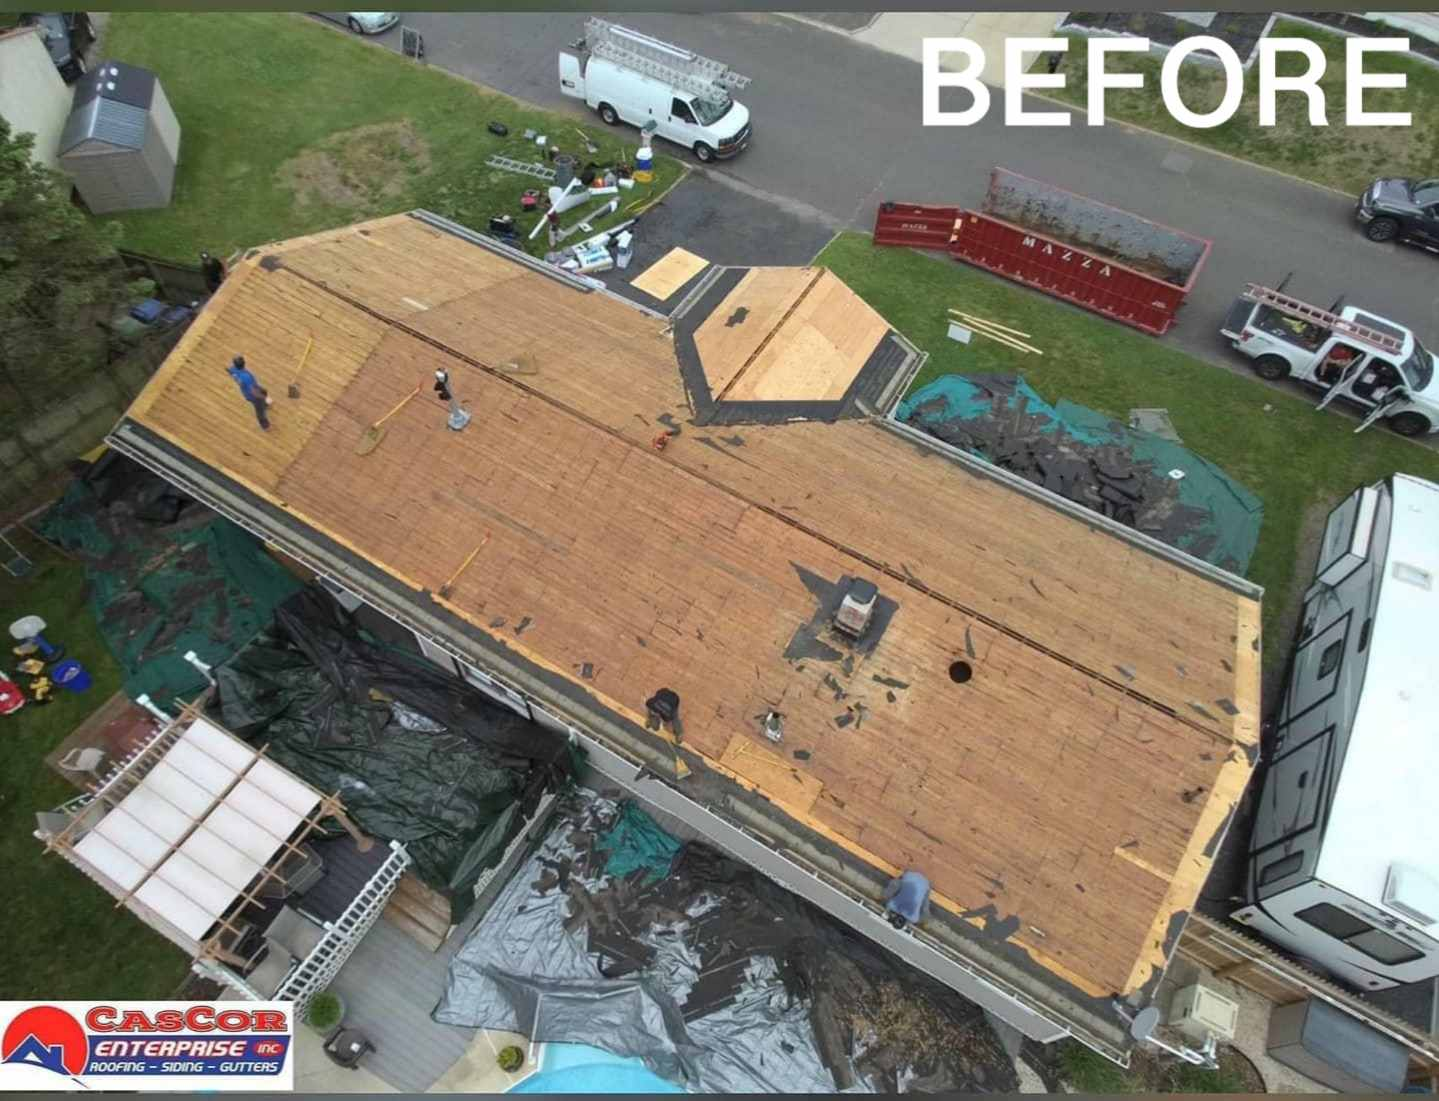 Before Roofing: Cascor Enterprise Inc